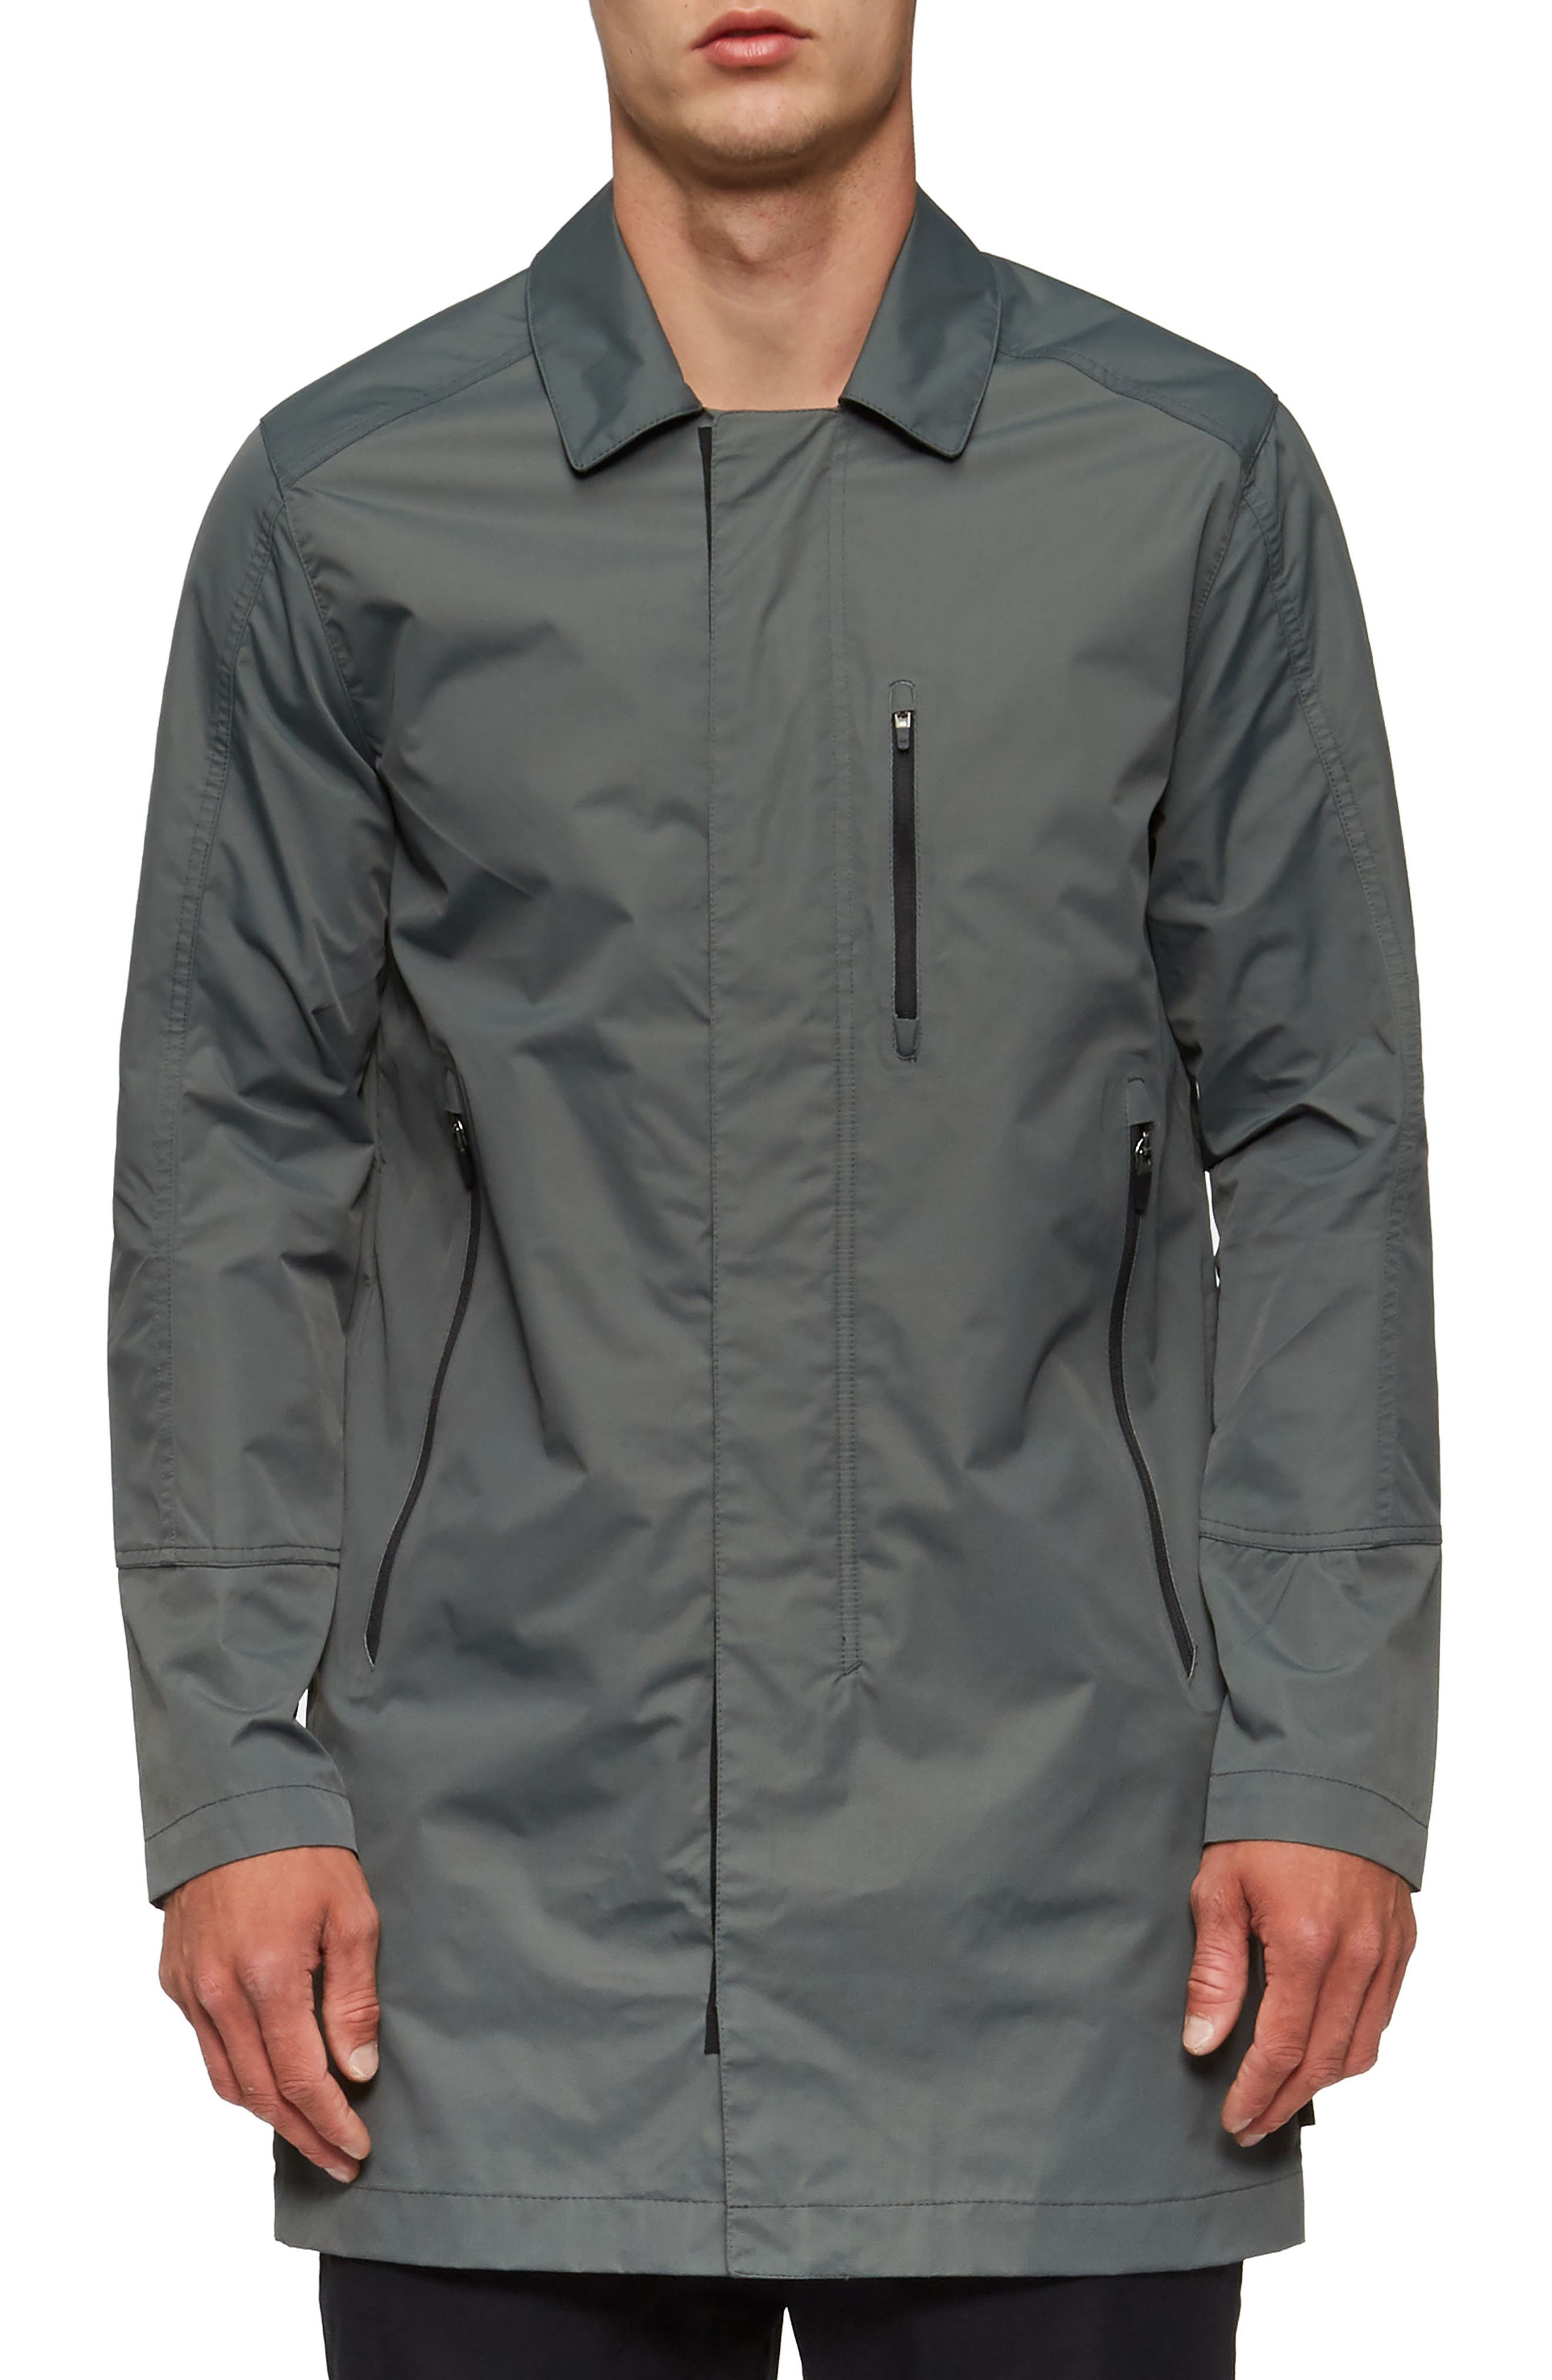 Deckard Weather Resistant Trench Coat,                             Main thumbnail 1, color,                             Surplus Green